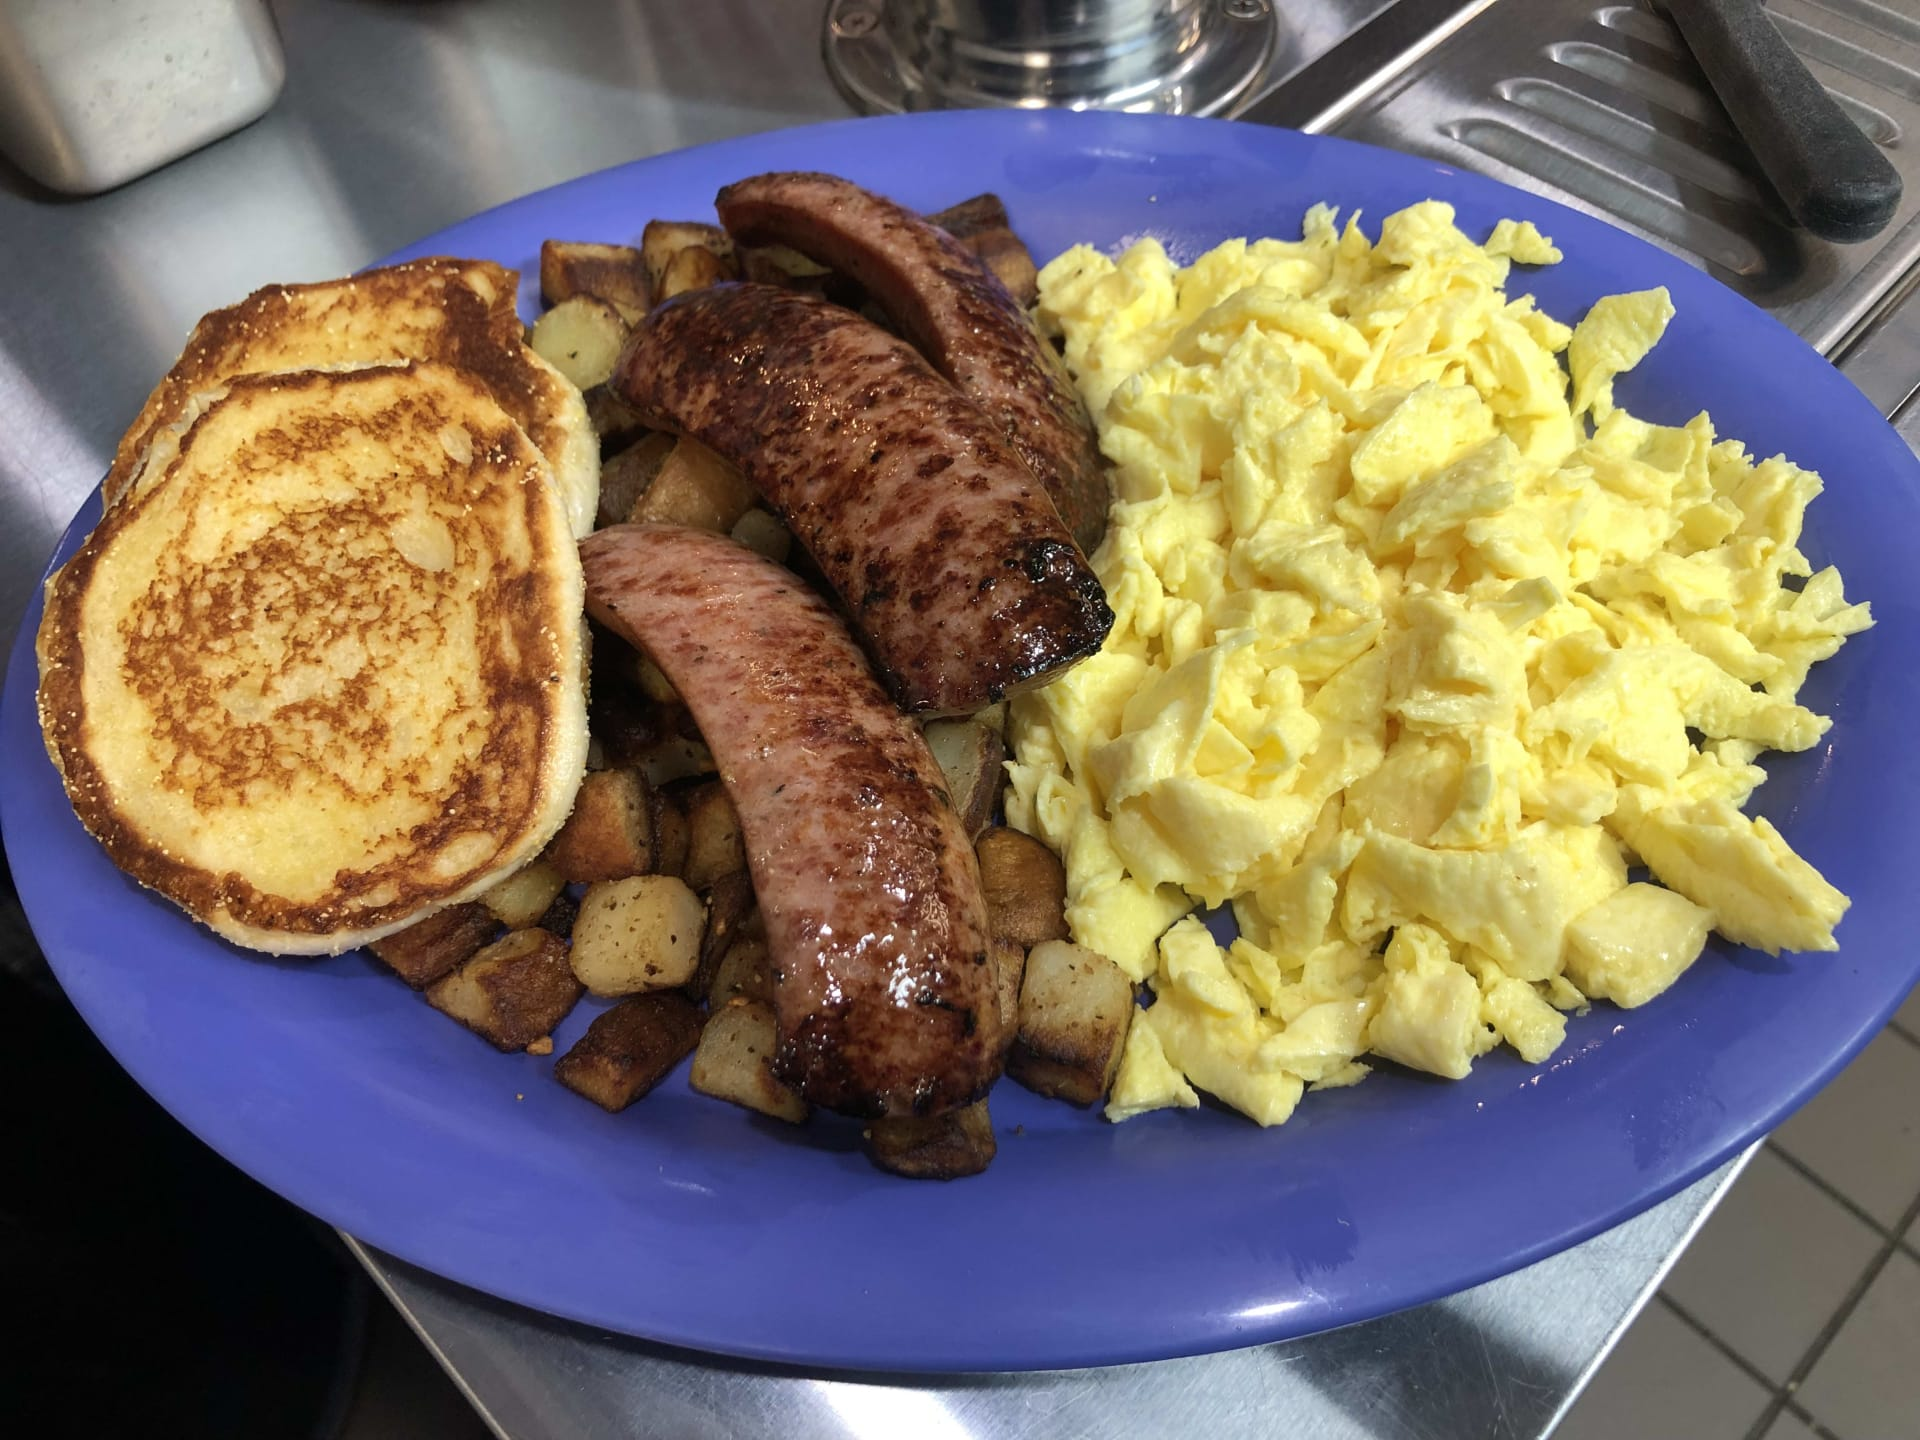 steak eggs and a side of pancakes